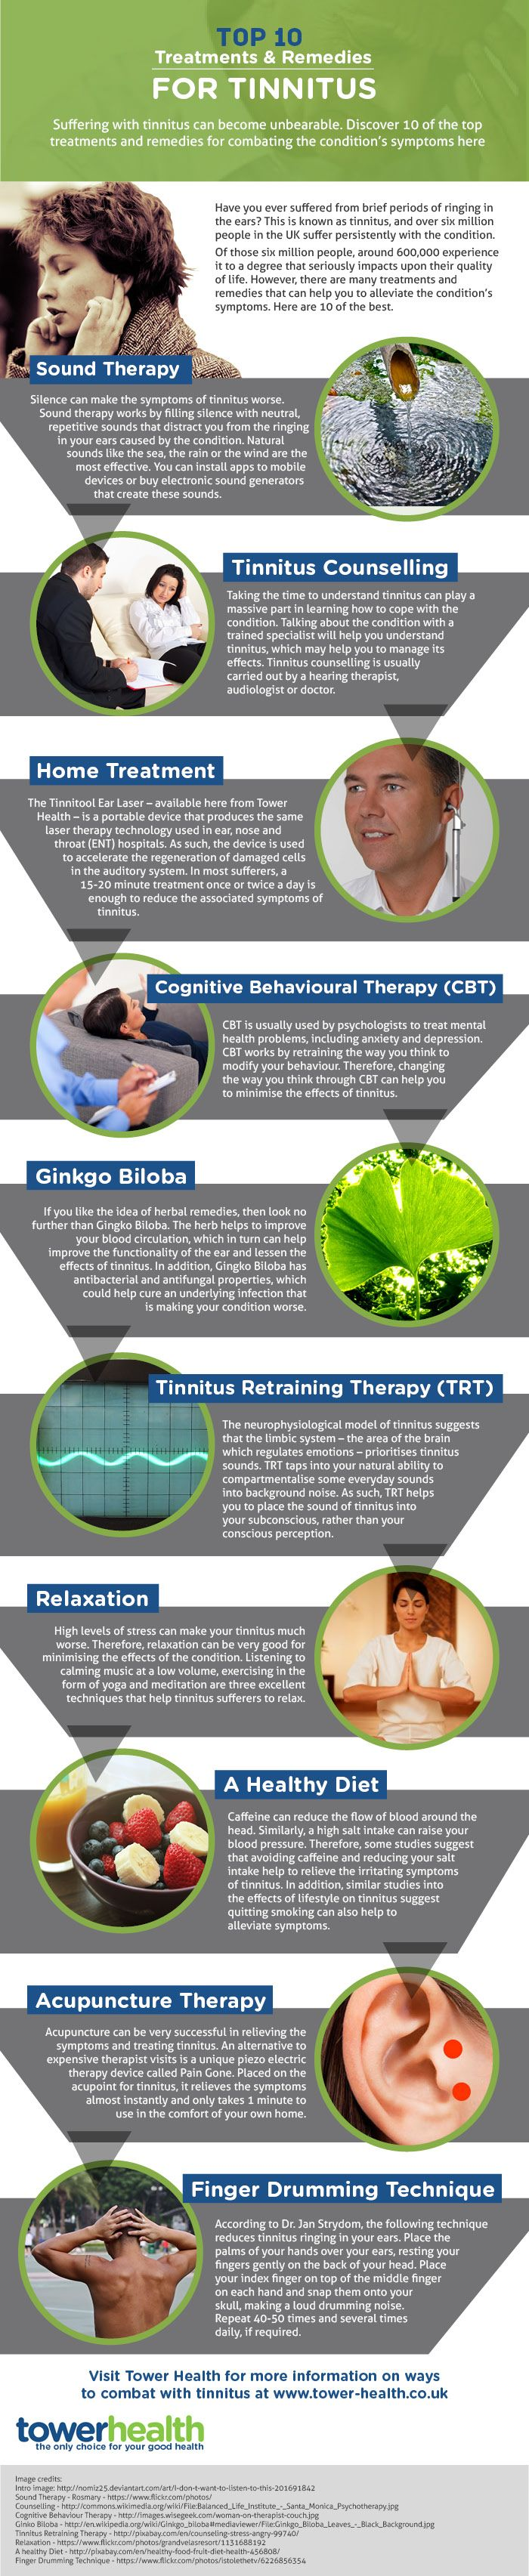 Fact filled #infographic about #tinnitus treatments